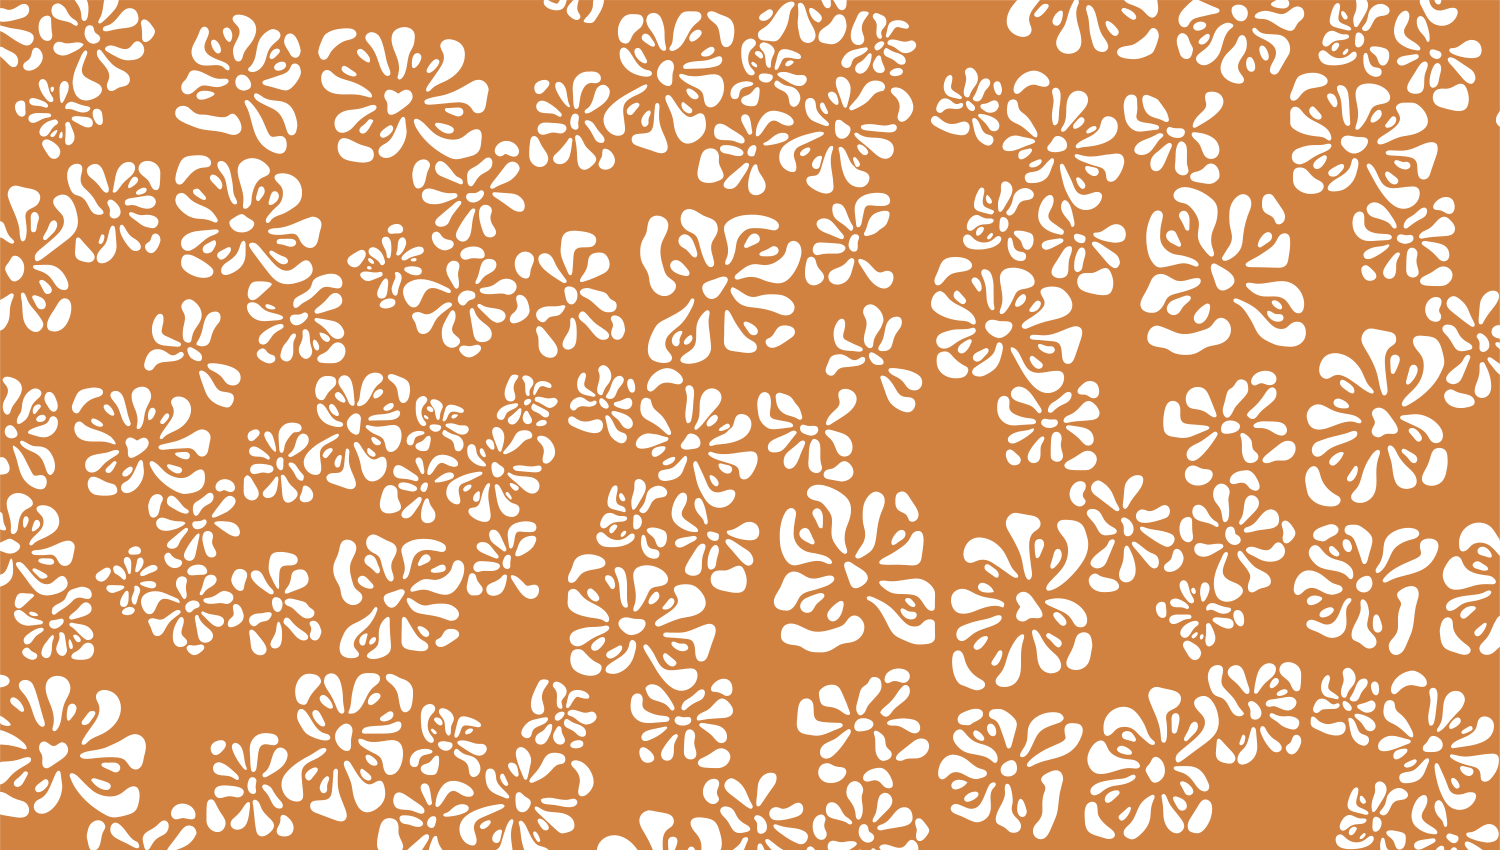 Parasoleil™ Magnolia© pattern displayed with a ochre color overlay